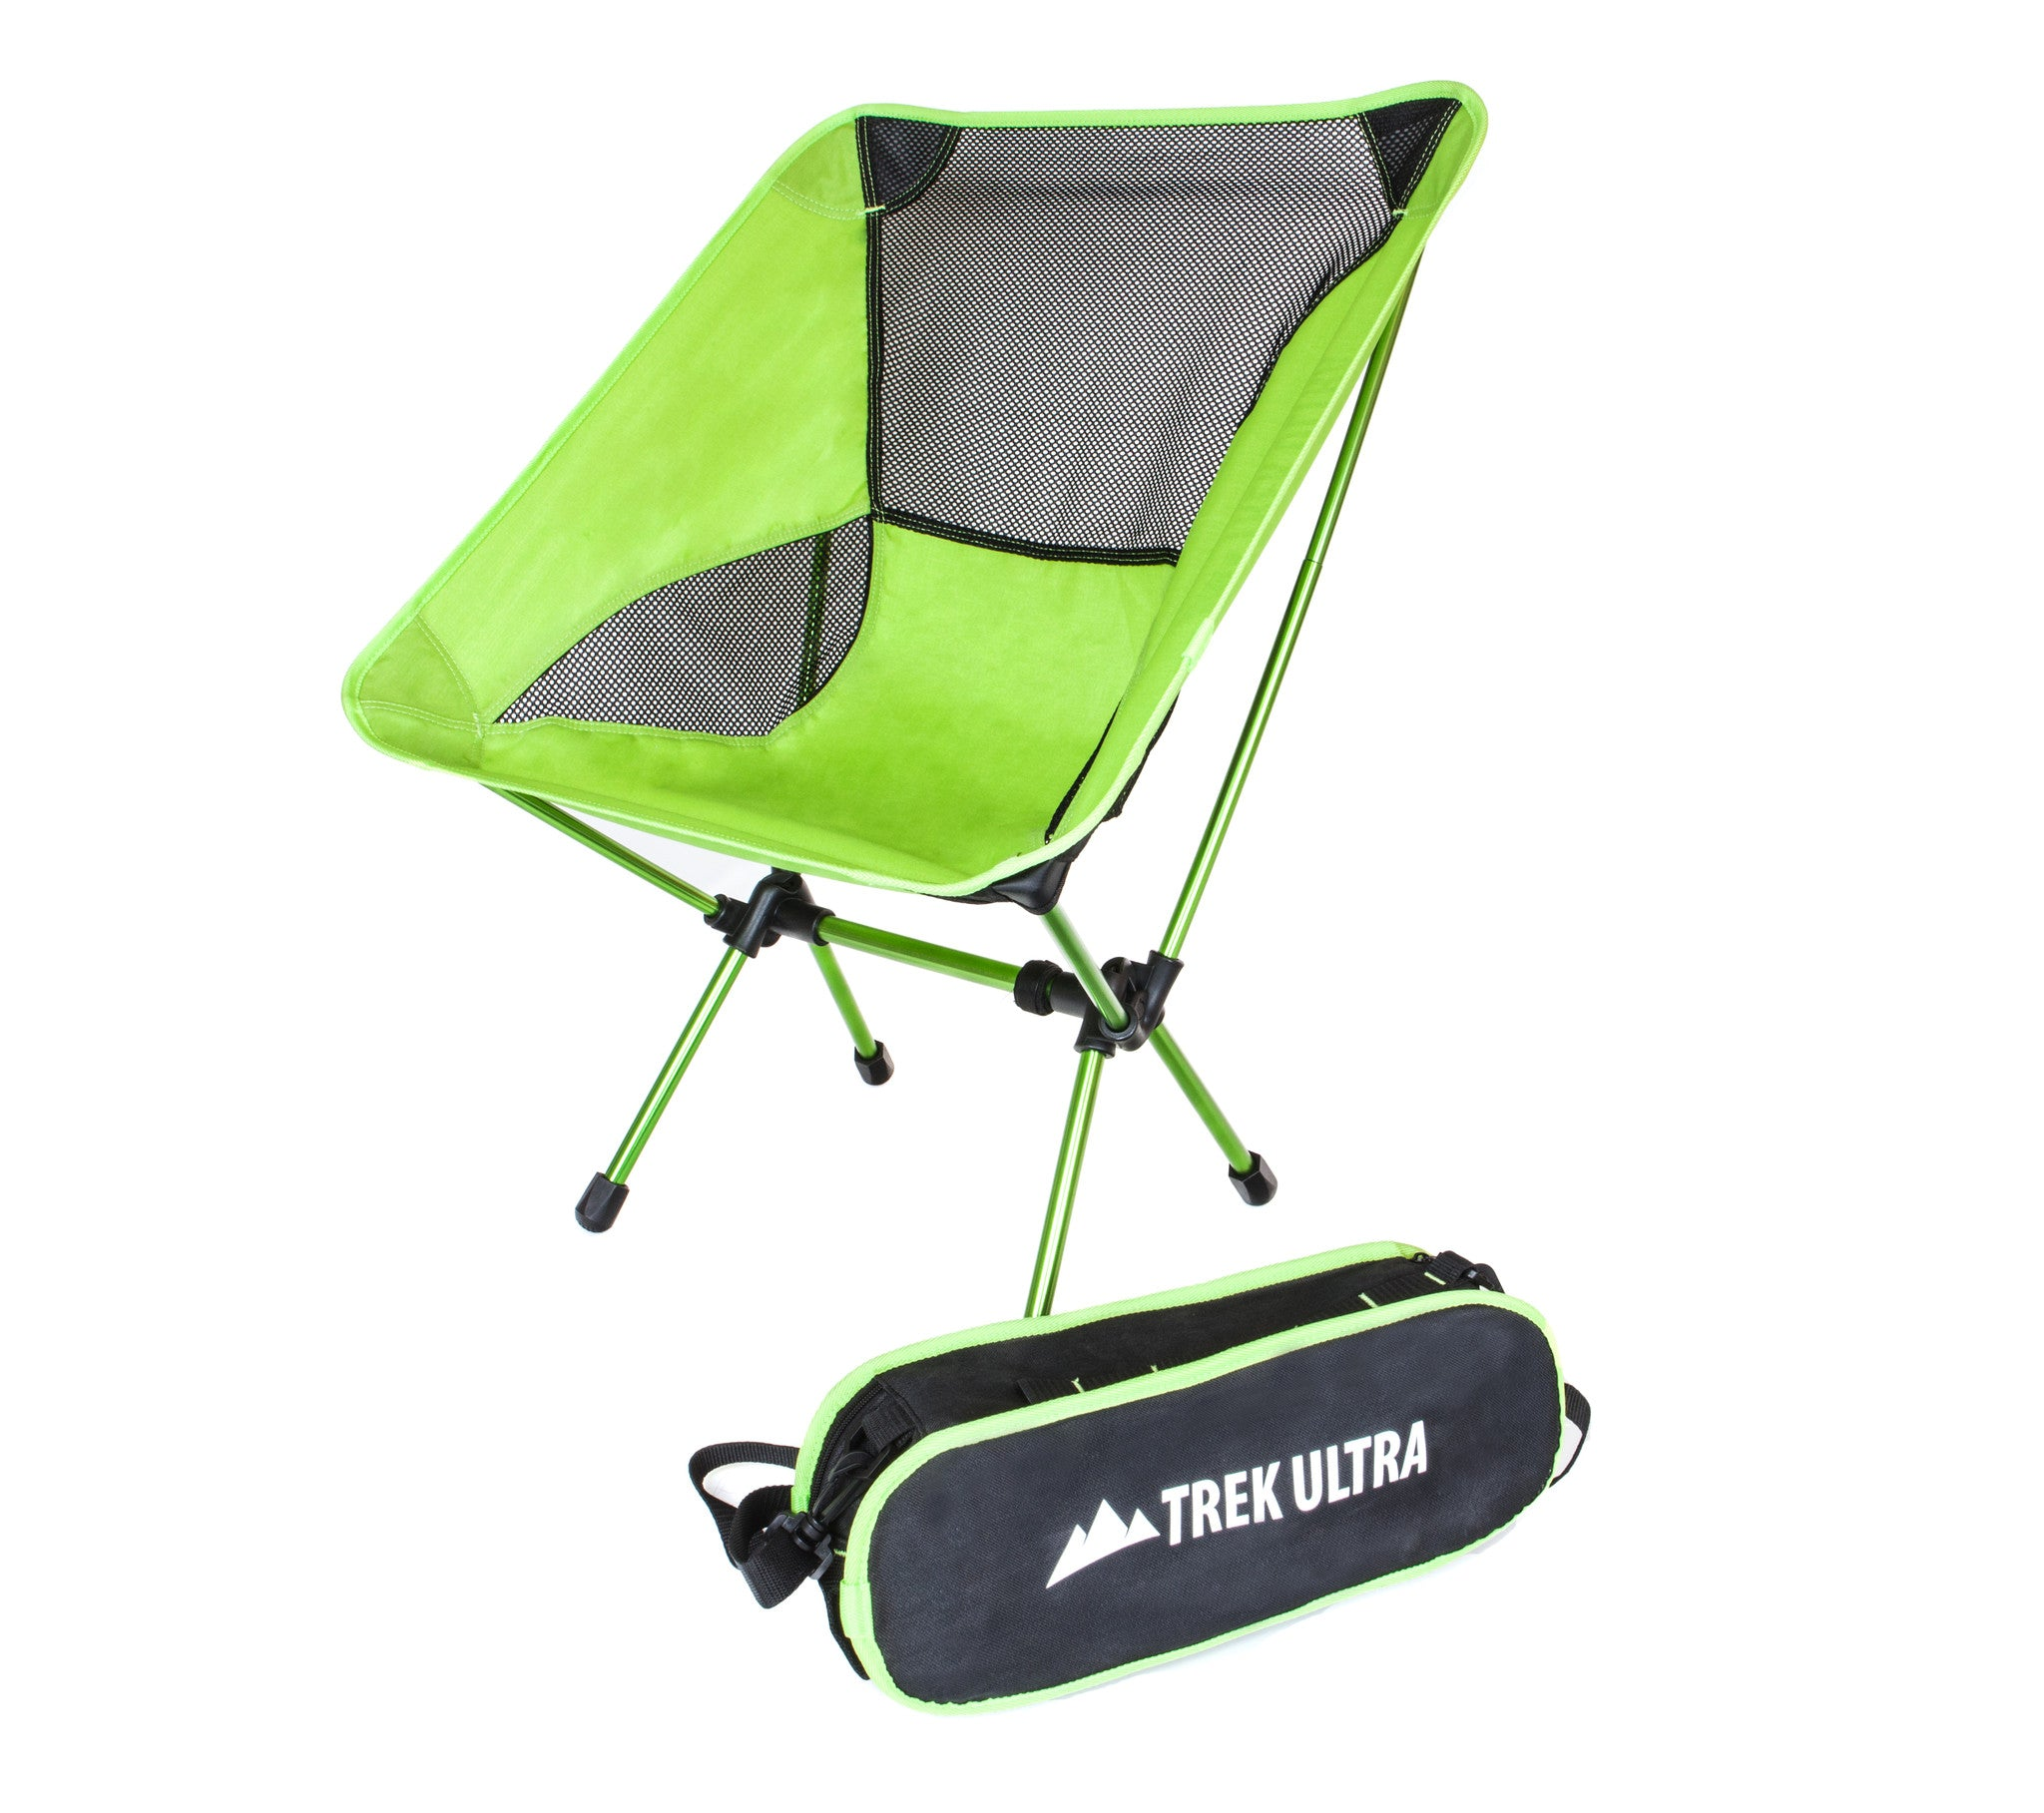 TrekUltra Camping Fold Up Chairs with Bag Portable Lightweight Heavy